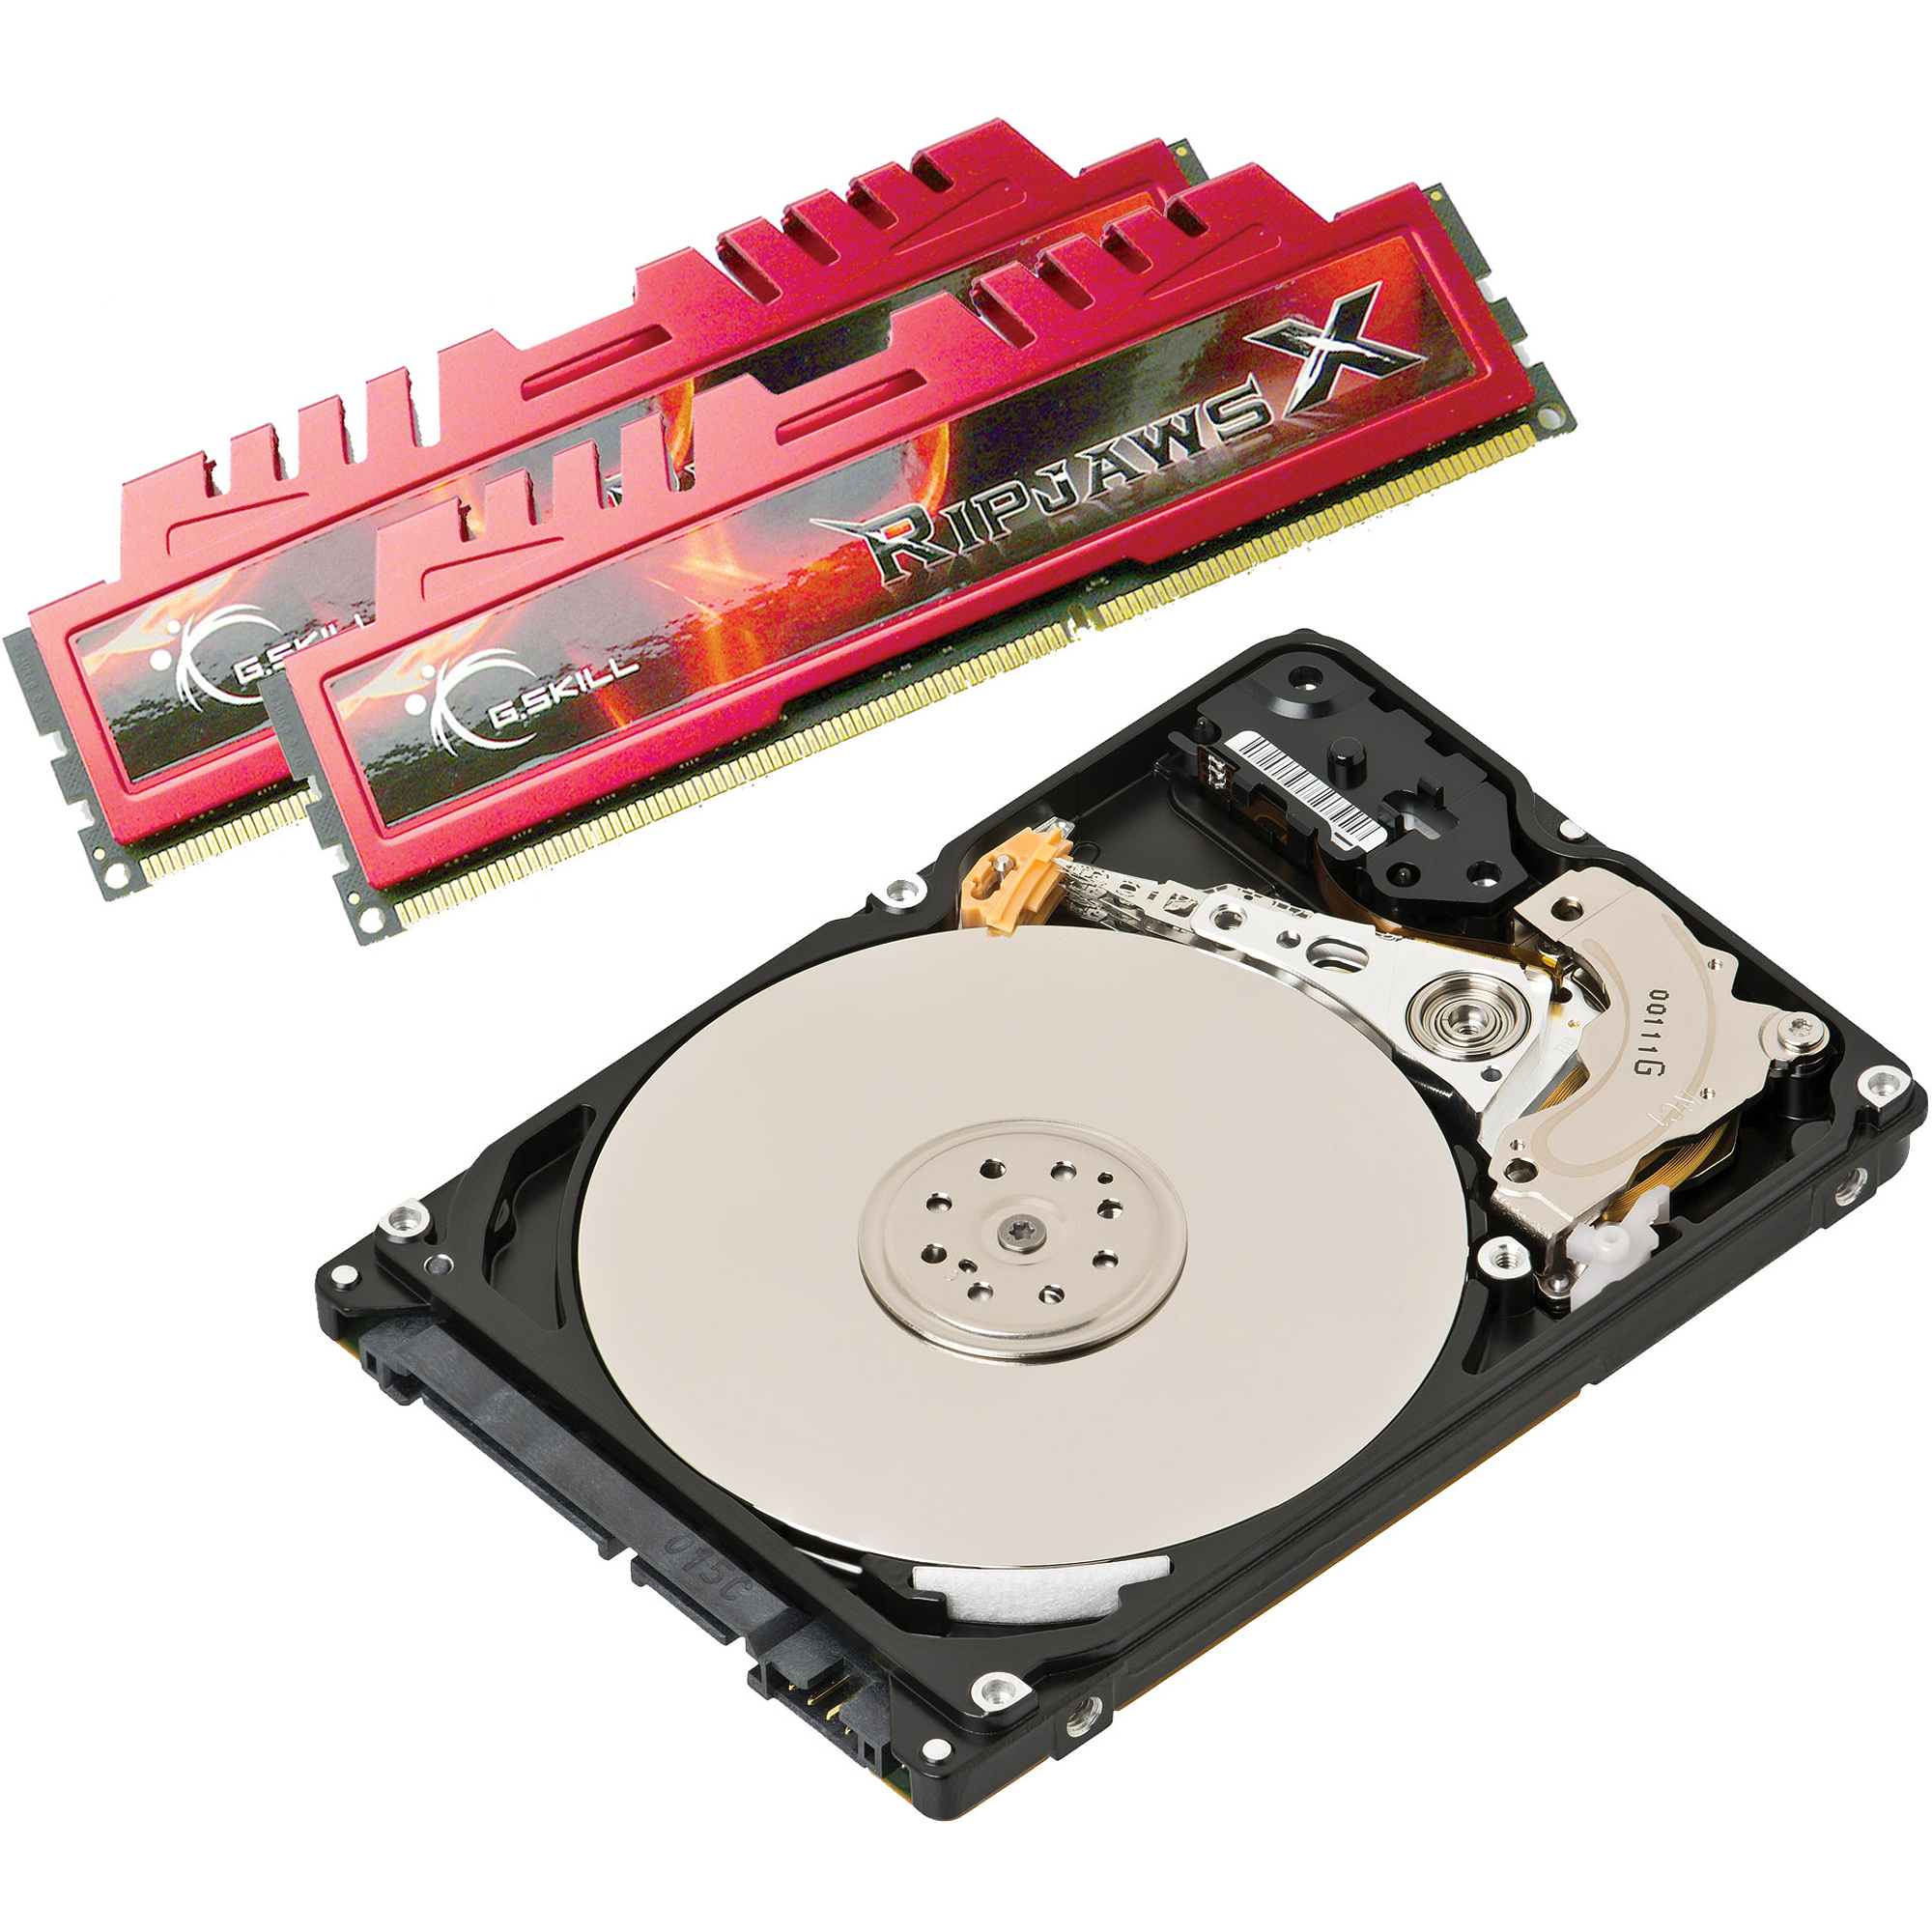 8GB DDR3 G.Skill Rip Jaws + 2TB Hard Drive